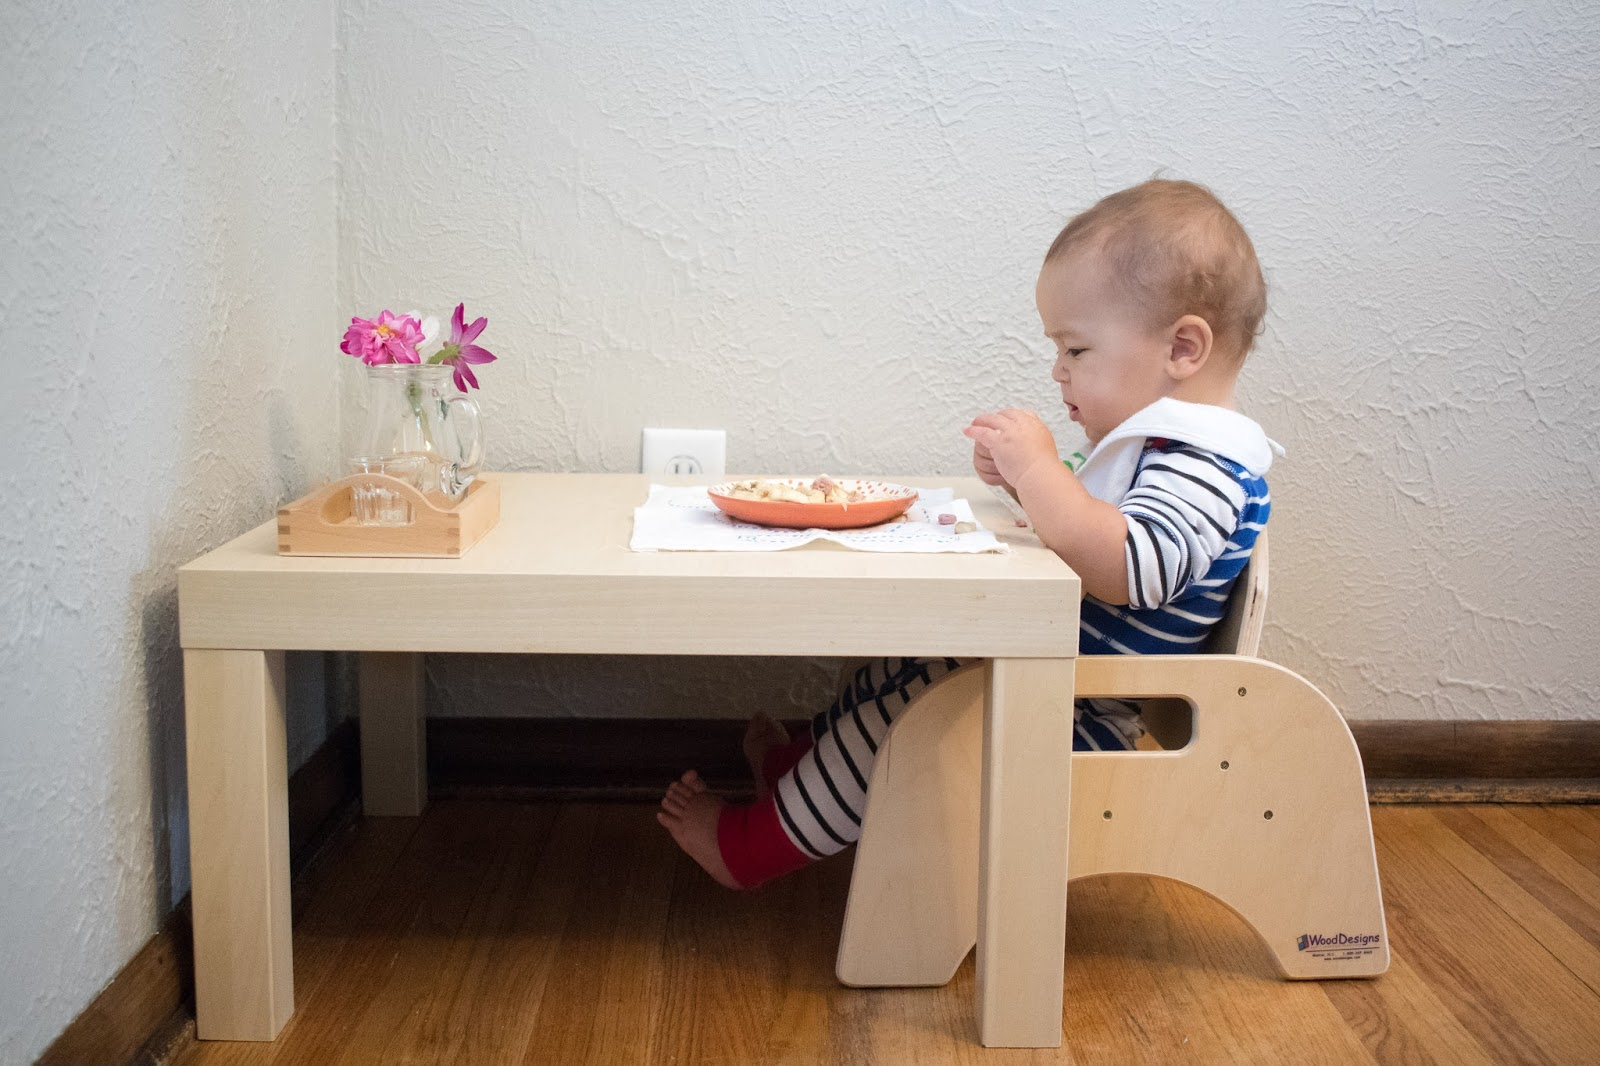 Toddler Chair And Table For Eating Glider Slipcovers Our Weaning Montessori Baby Week 42